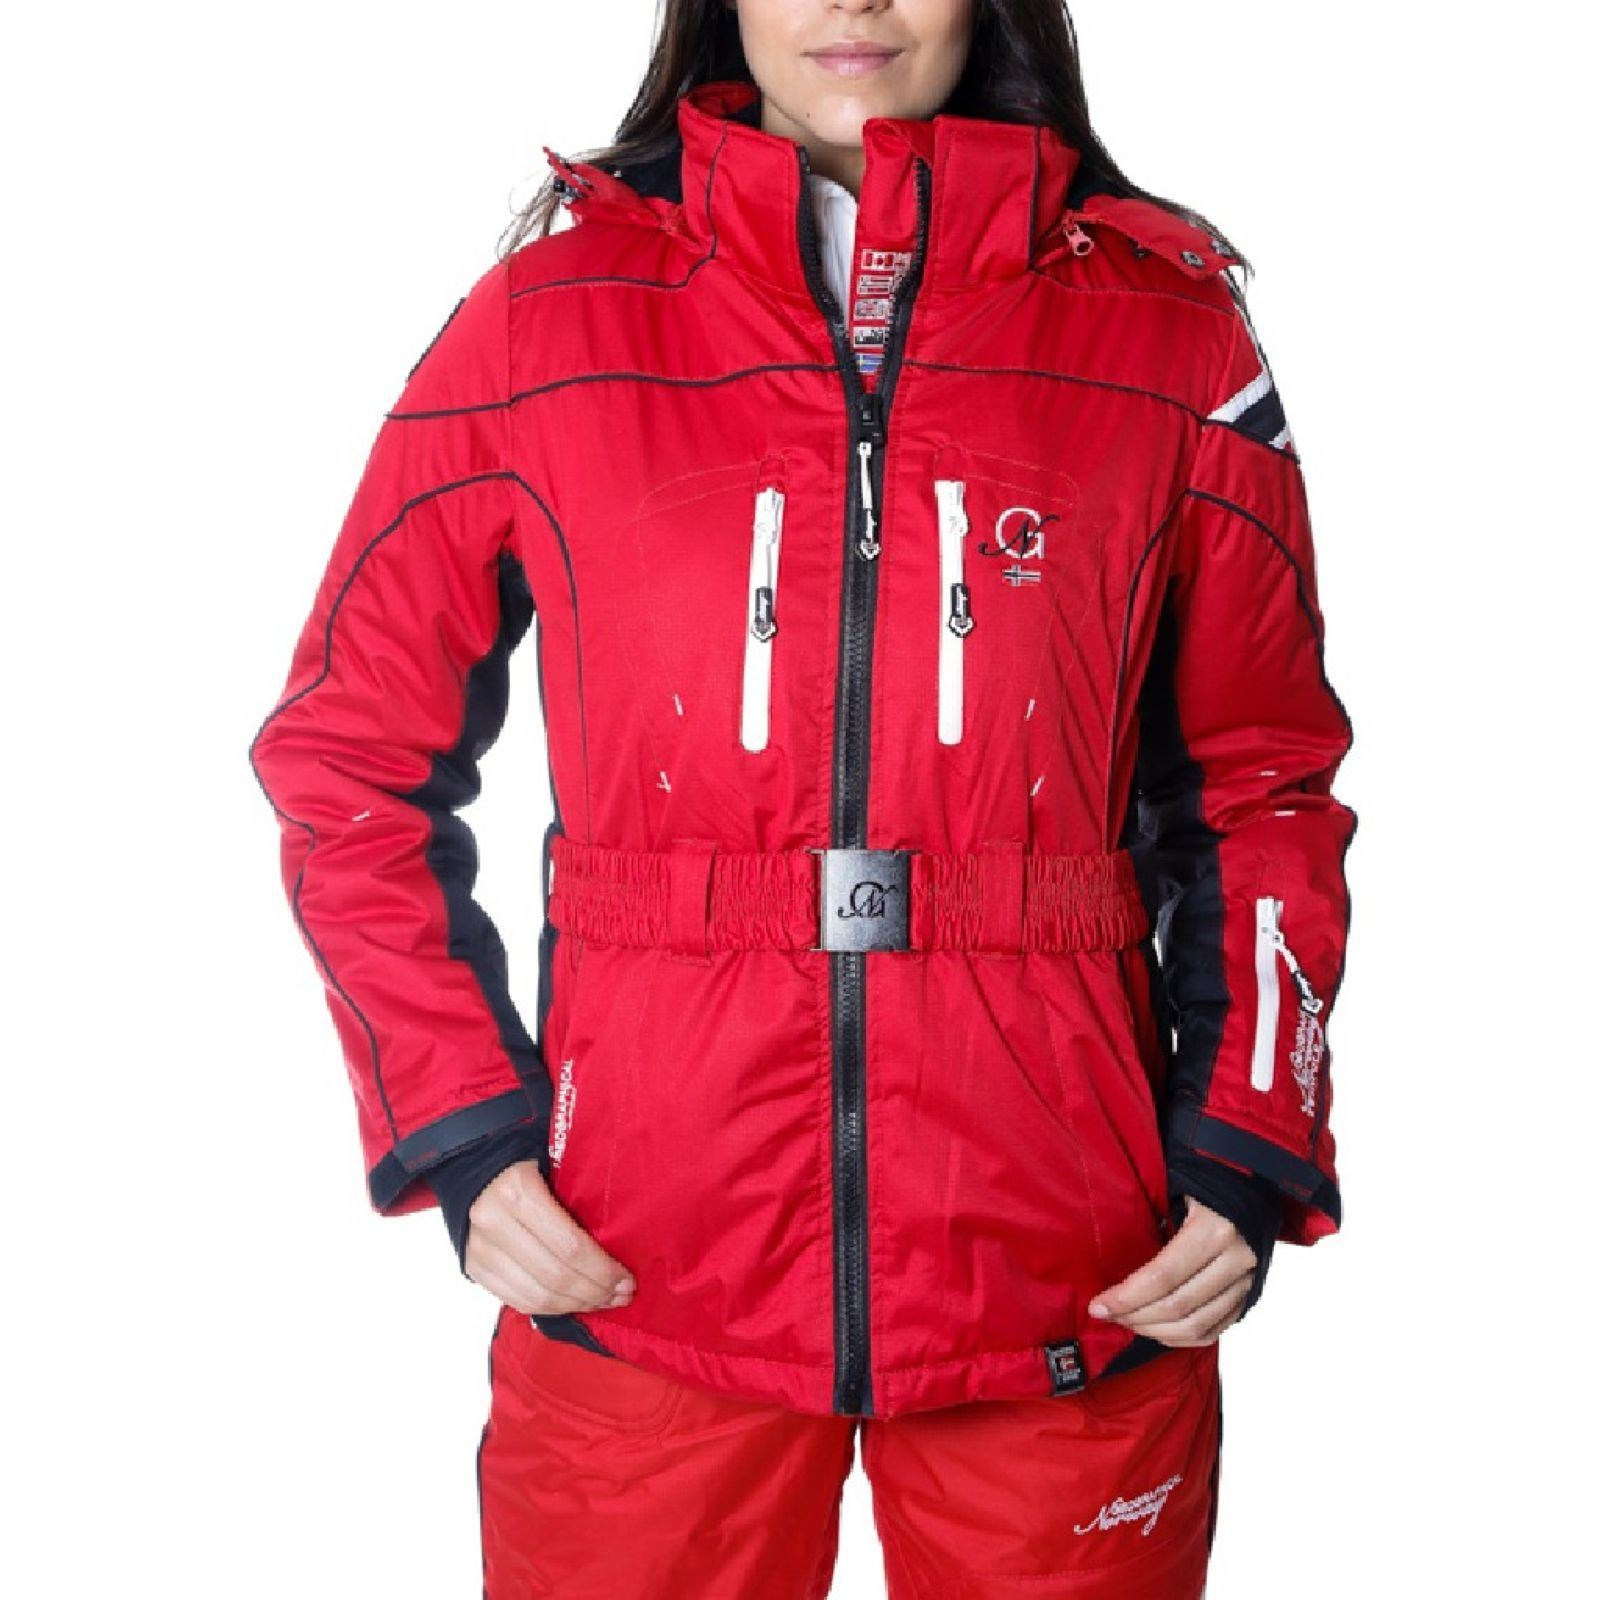 V SkiRouge De Blouson Femme Geographical Norway OPkZuwiTX